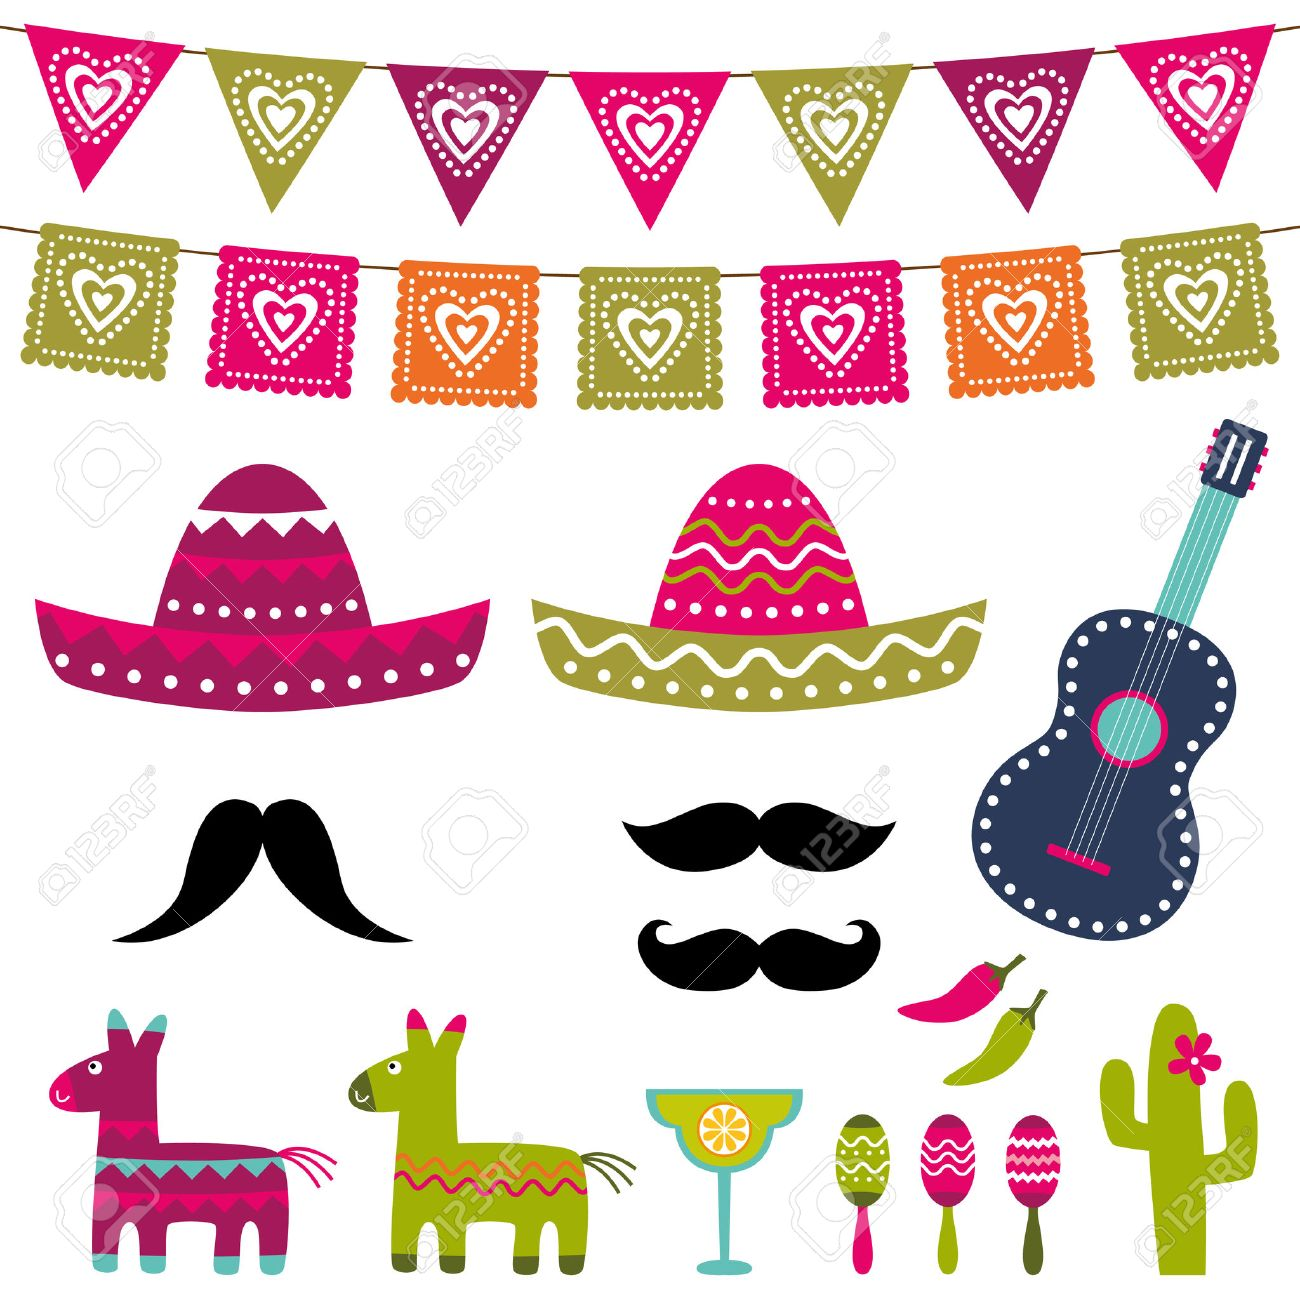 Mexican Party Decoration And Photo Booth Props Set Royalty Free